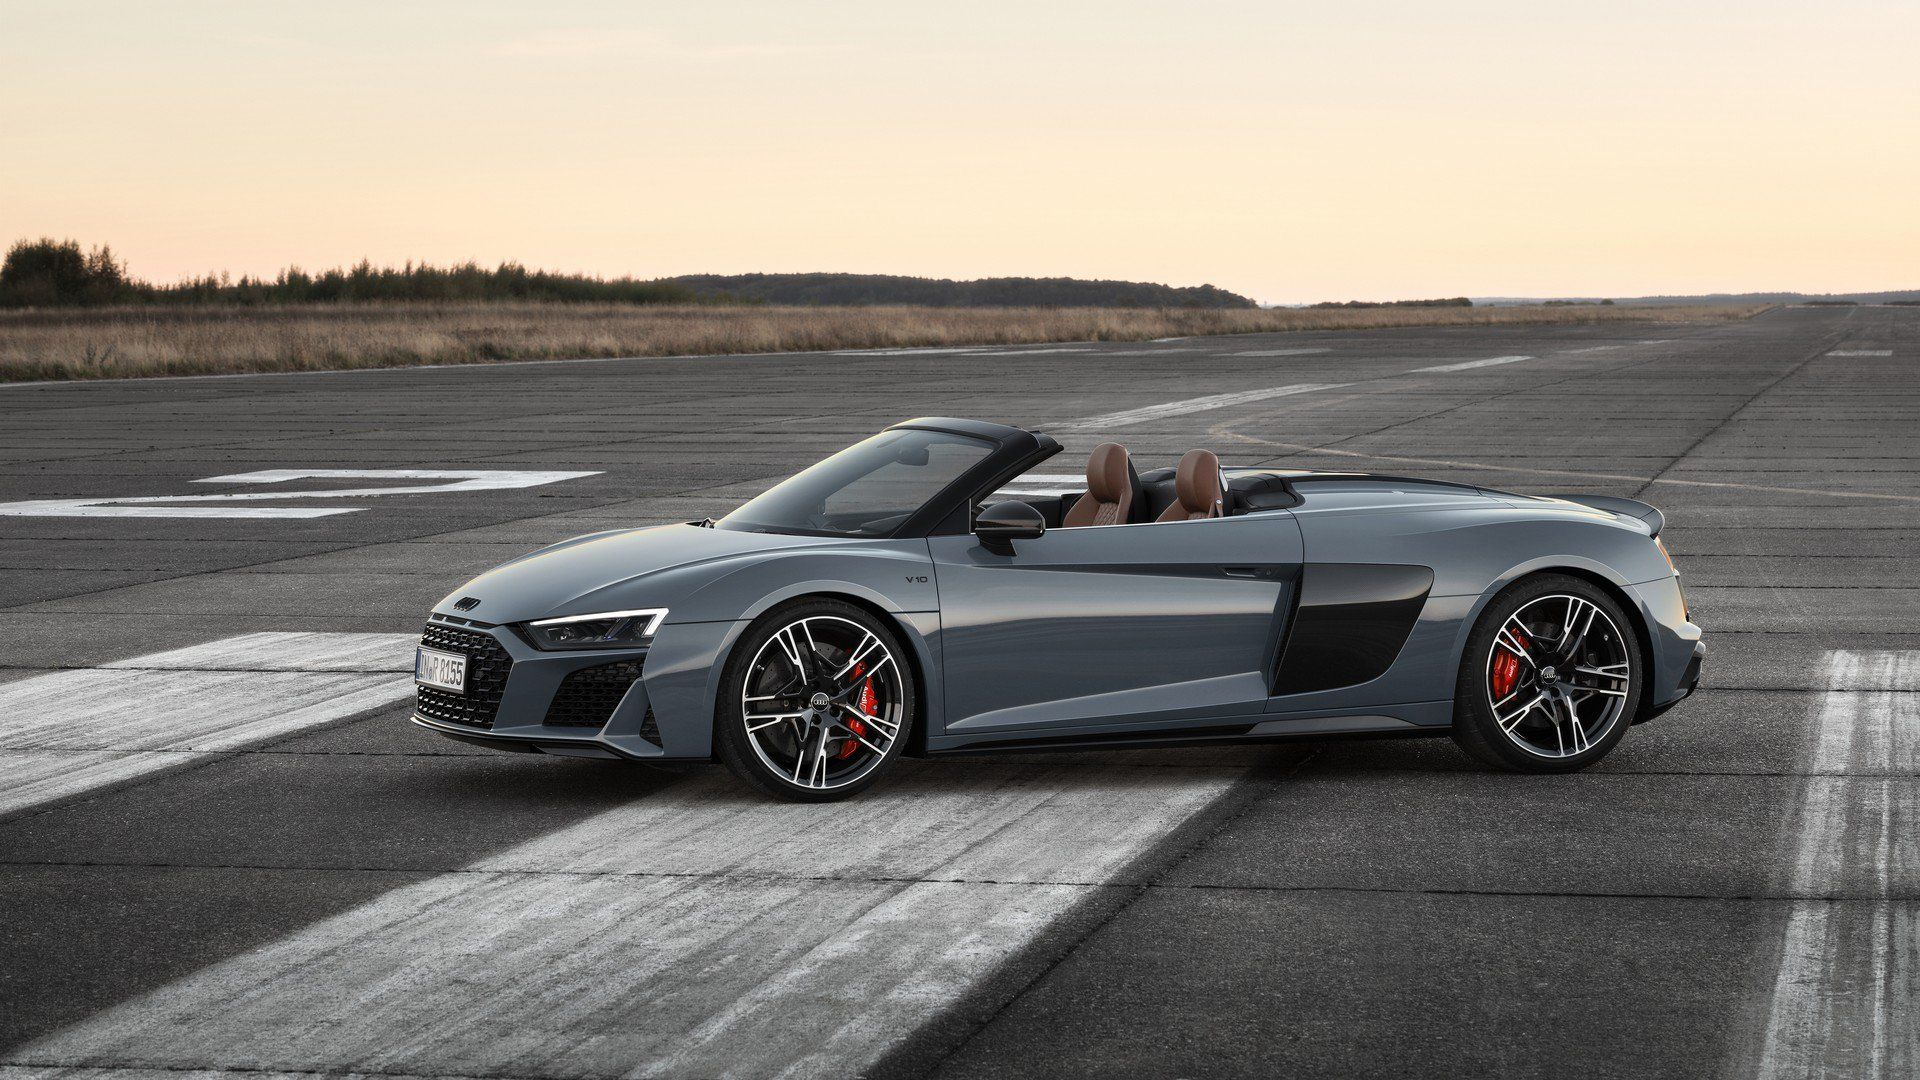 Updated 2020 Audi R8 Makes Stateside Debut In Ny Starts At 170 000 Carscoops Audi R8 Convertible Audi R8 Spyder Audi R8 V10